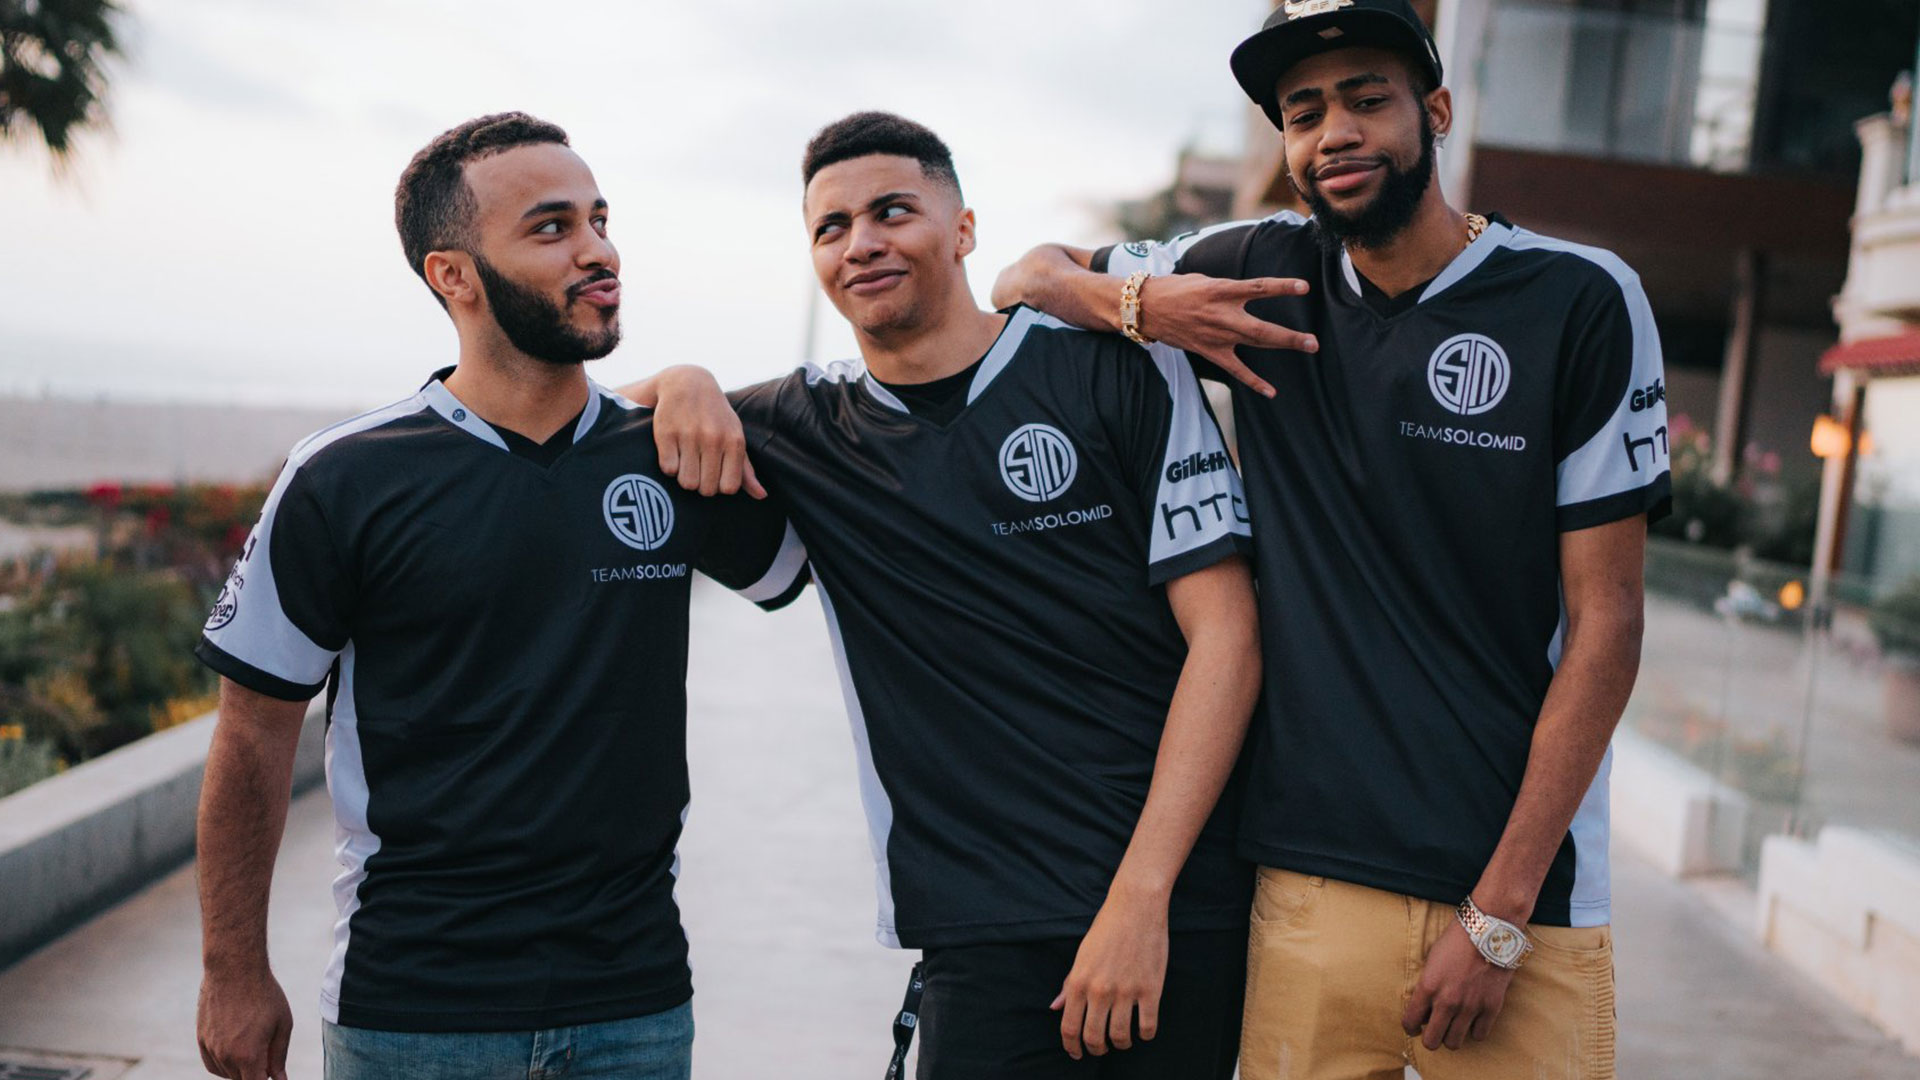 Tsm team fortnite members